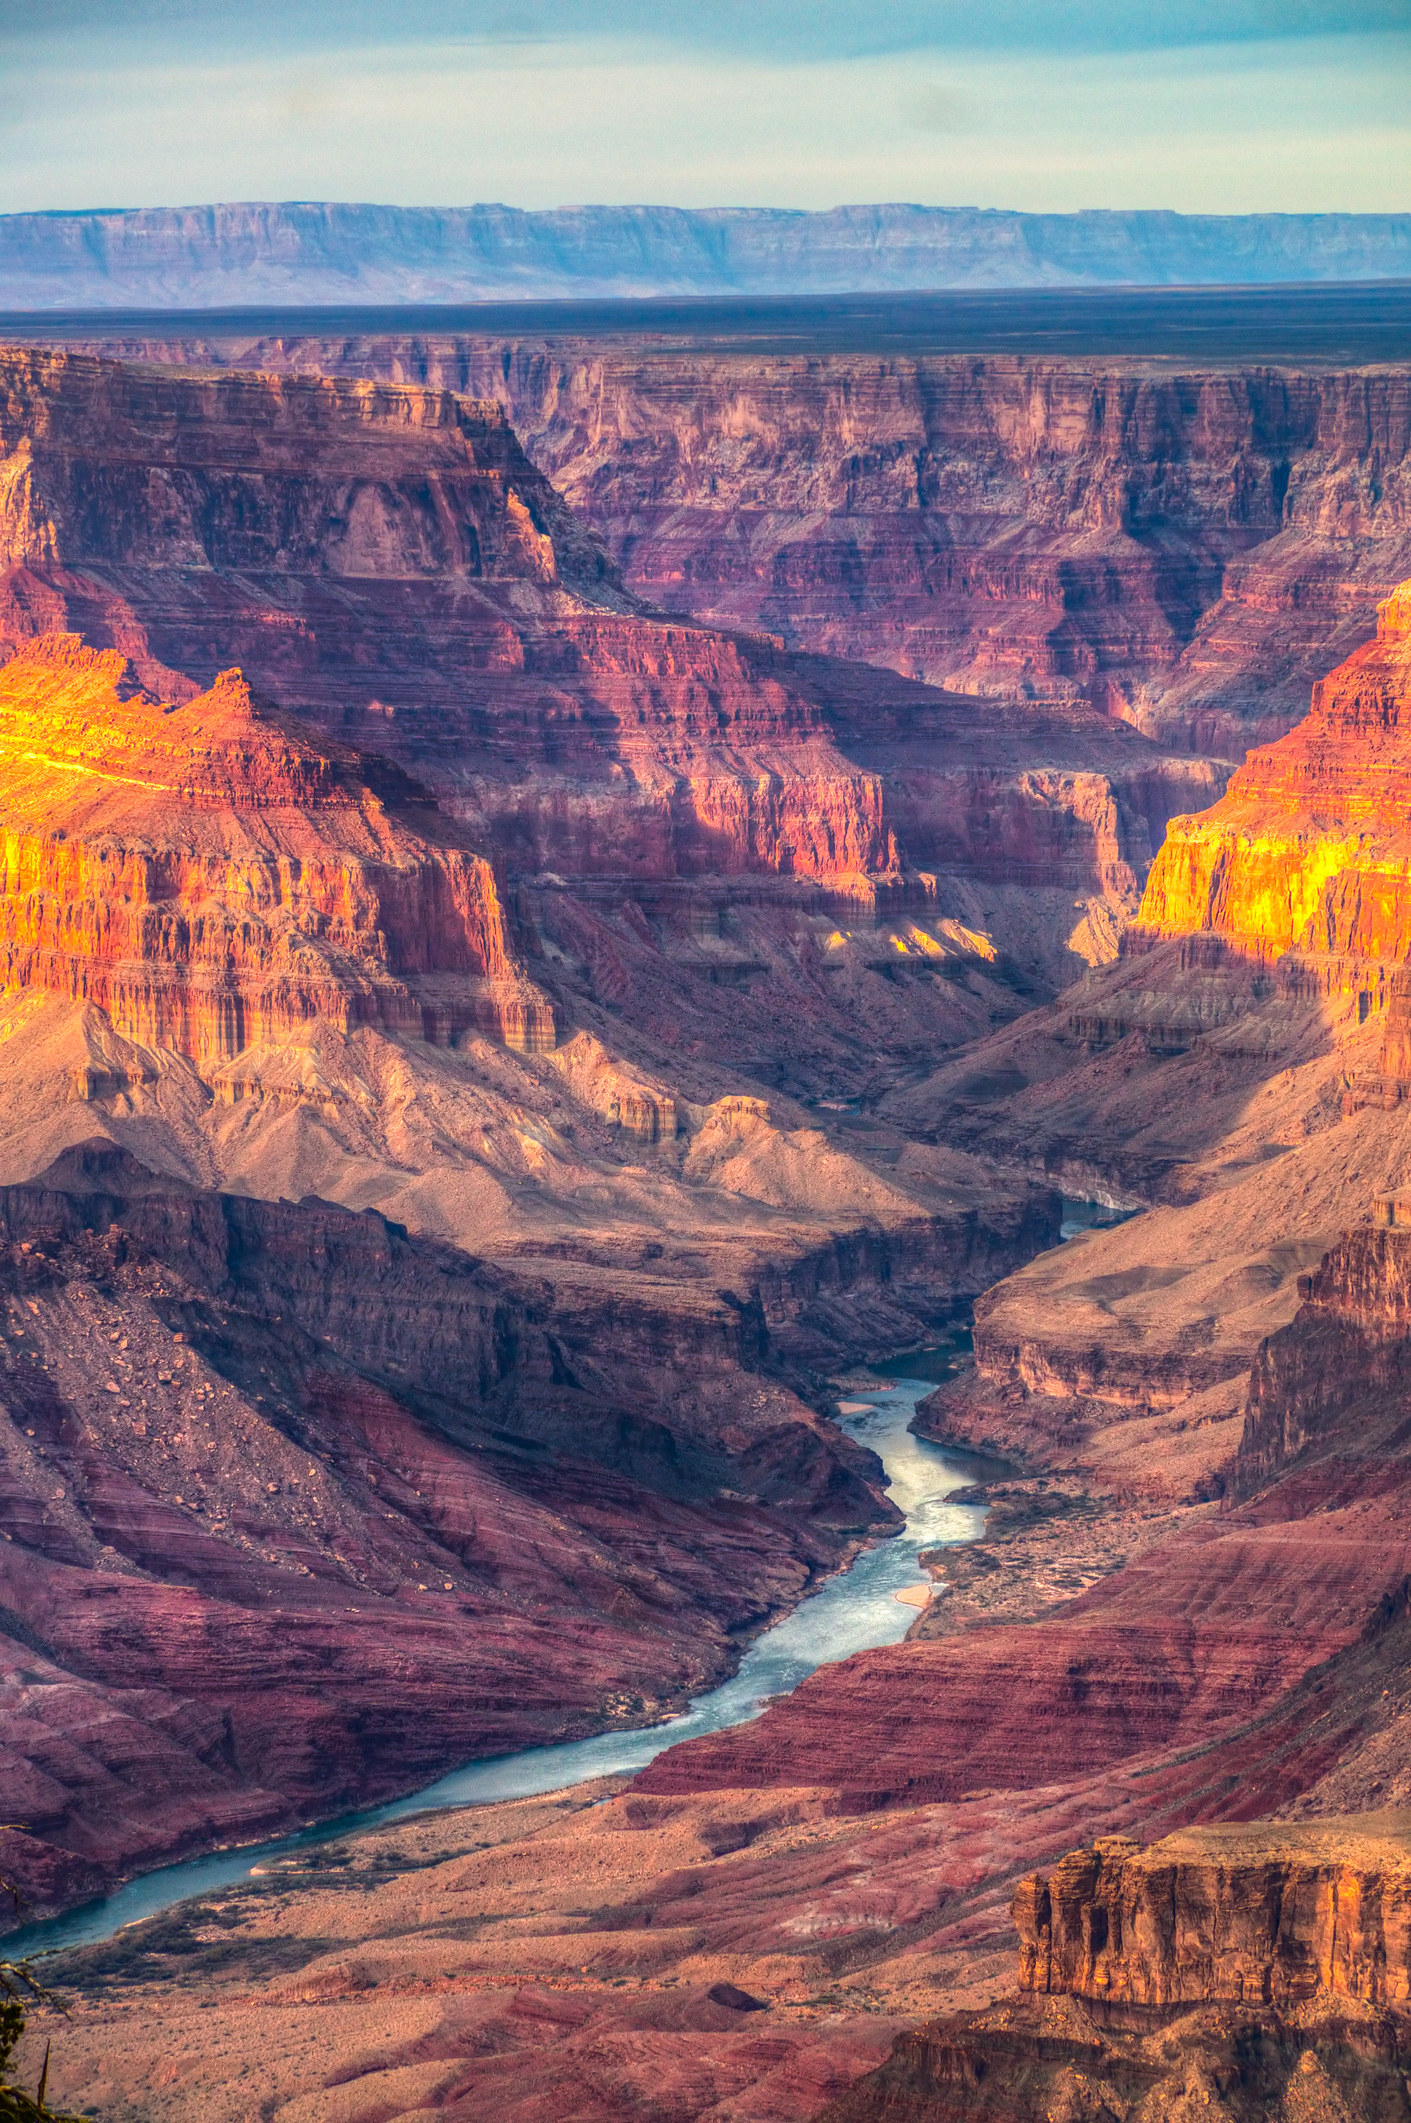 dusk light shines over a giant rocky canyon with a river at the bottom